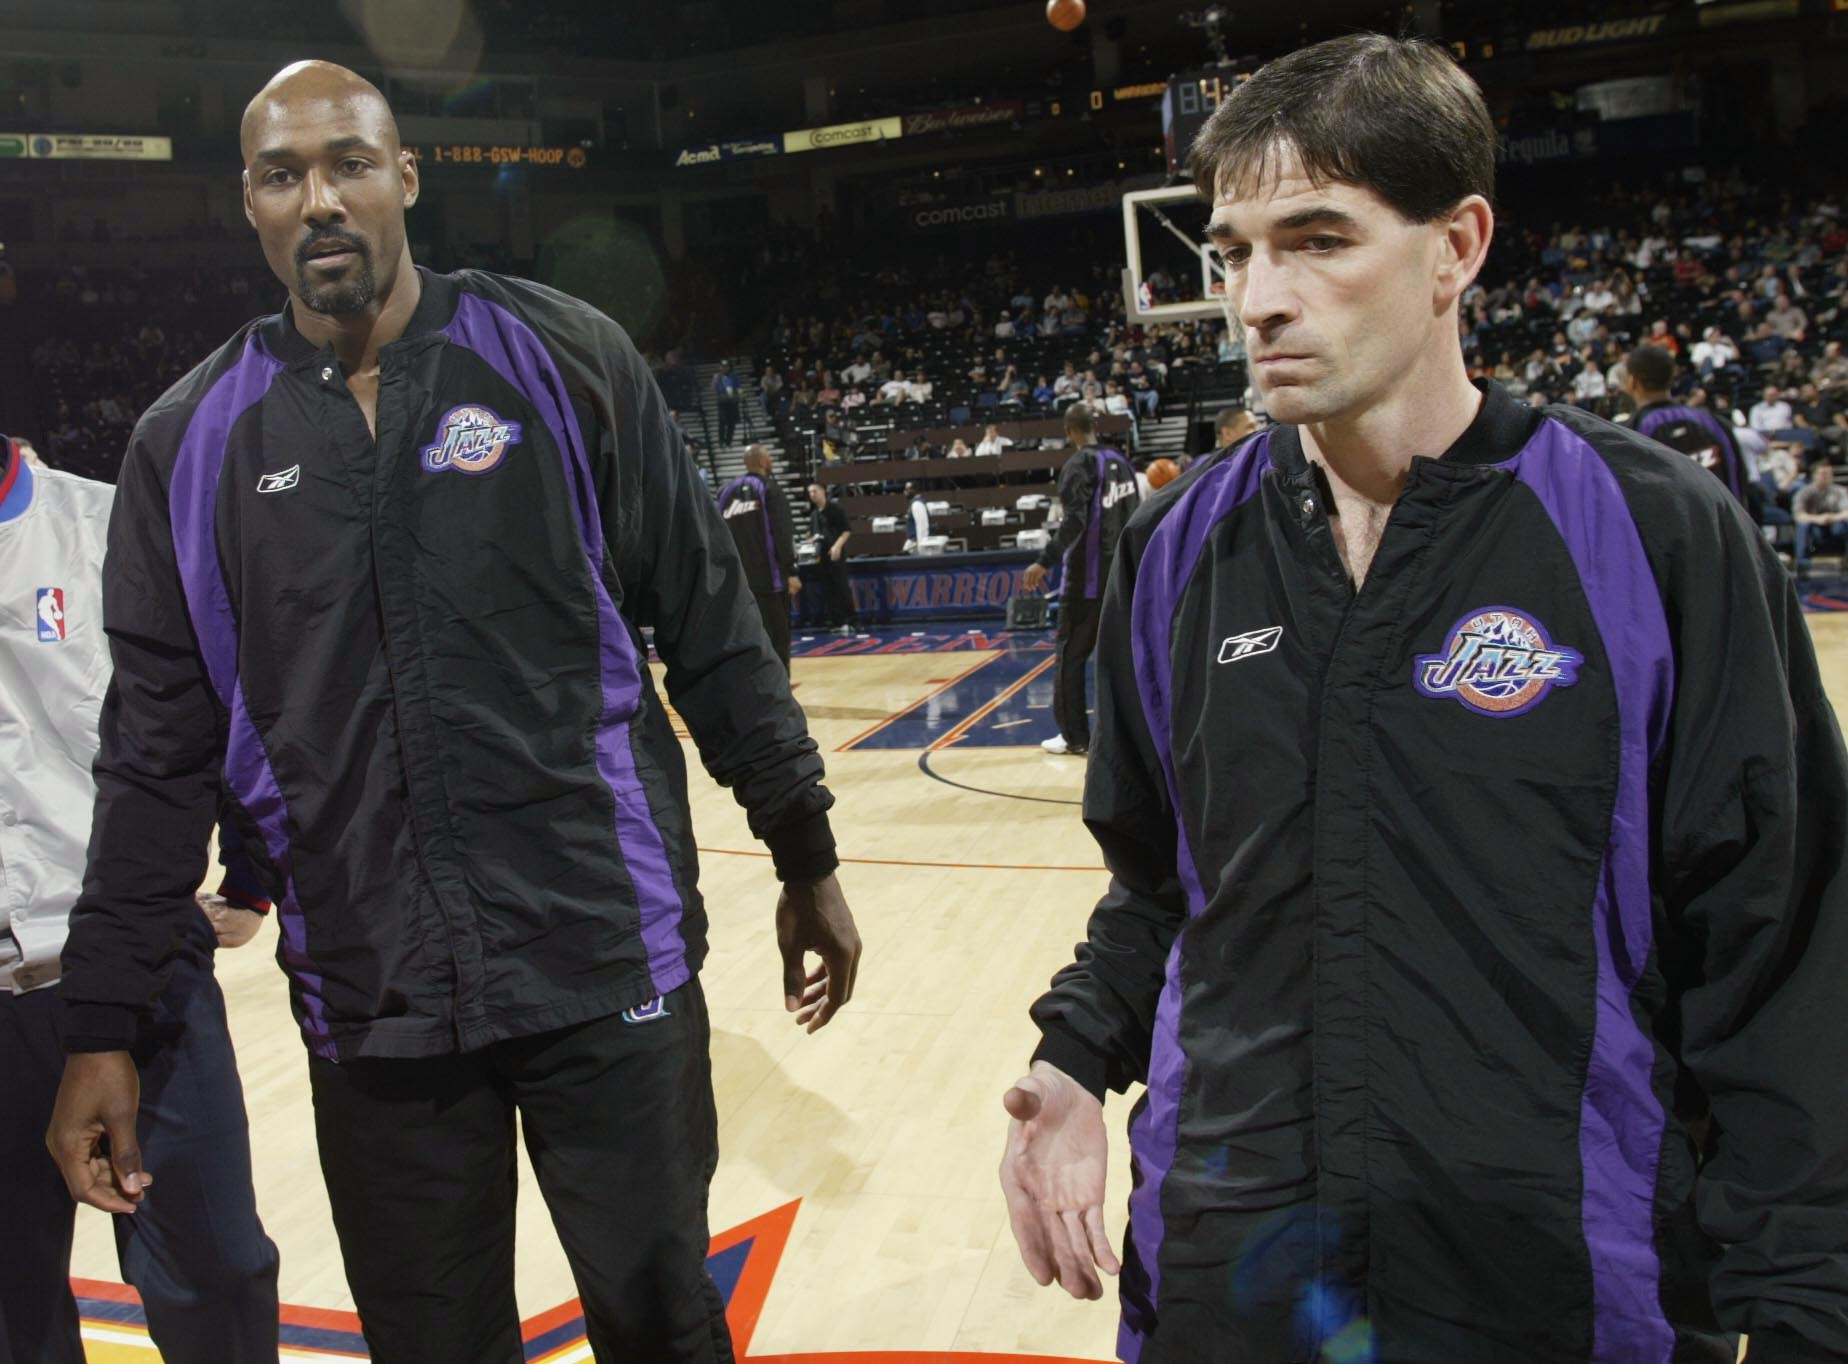 OAKLAND, CA - APRIL 8:  Karl Malone #32 and John Stockton #12 of the Utah Jazz before a game against the Golden State Warriors at the Network Associates Coliseum on April 8, 2003 in Oakland, California. NOTE TO USER: User expressly acknowledges and agrees